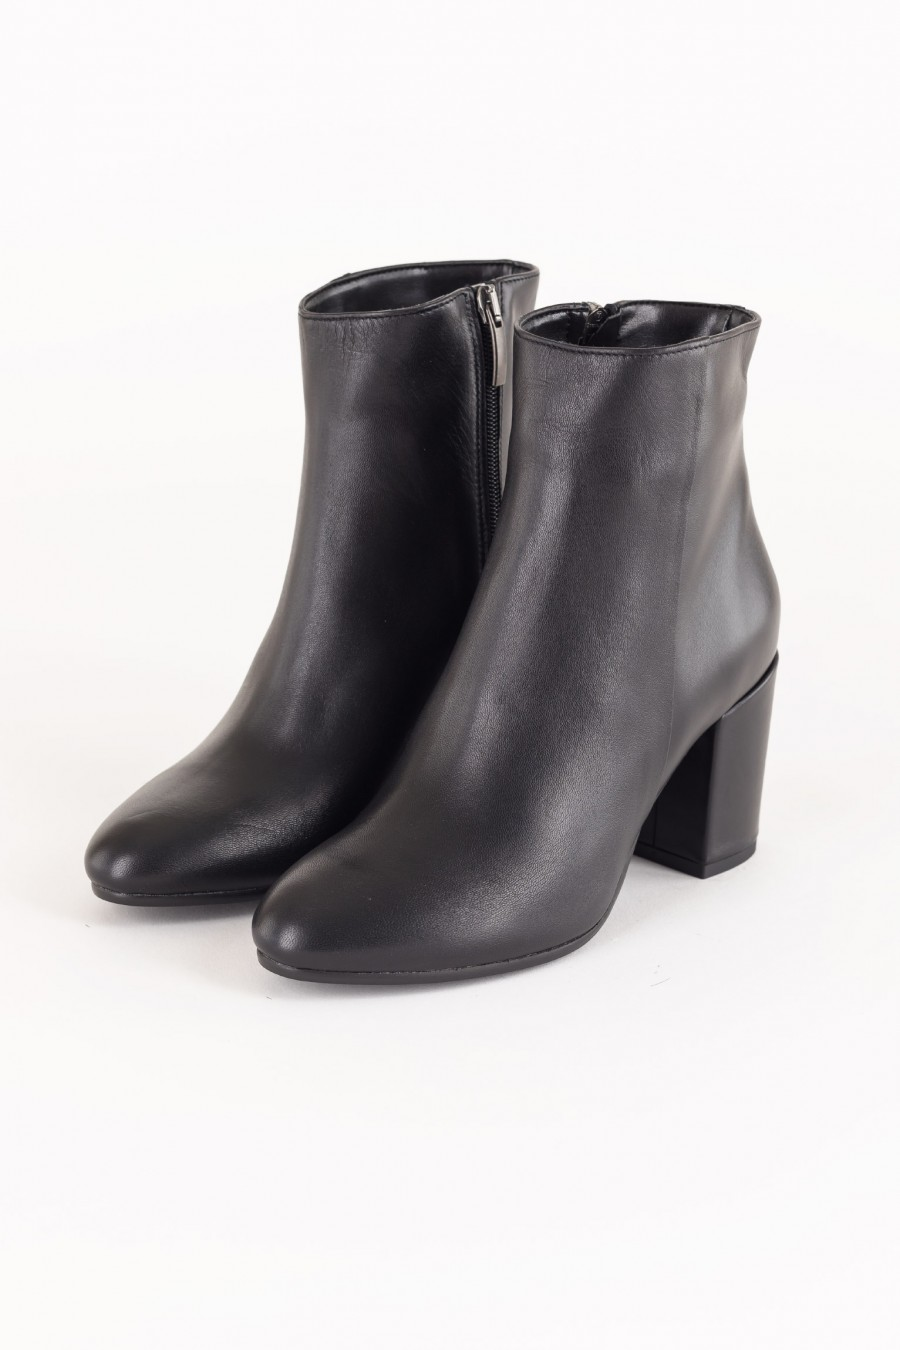 Black boots with mid heels